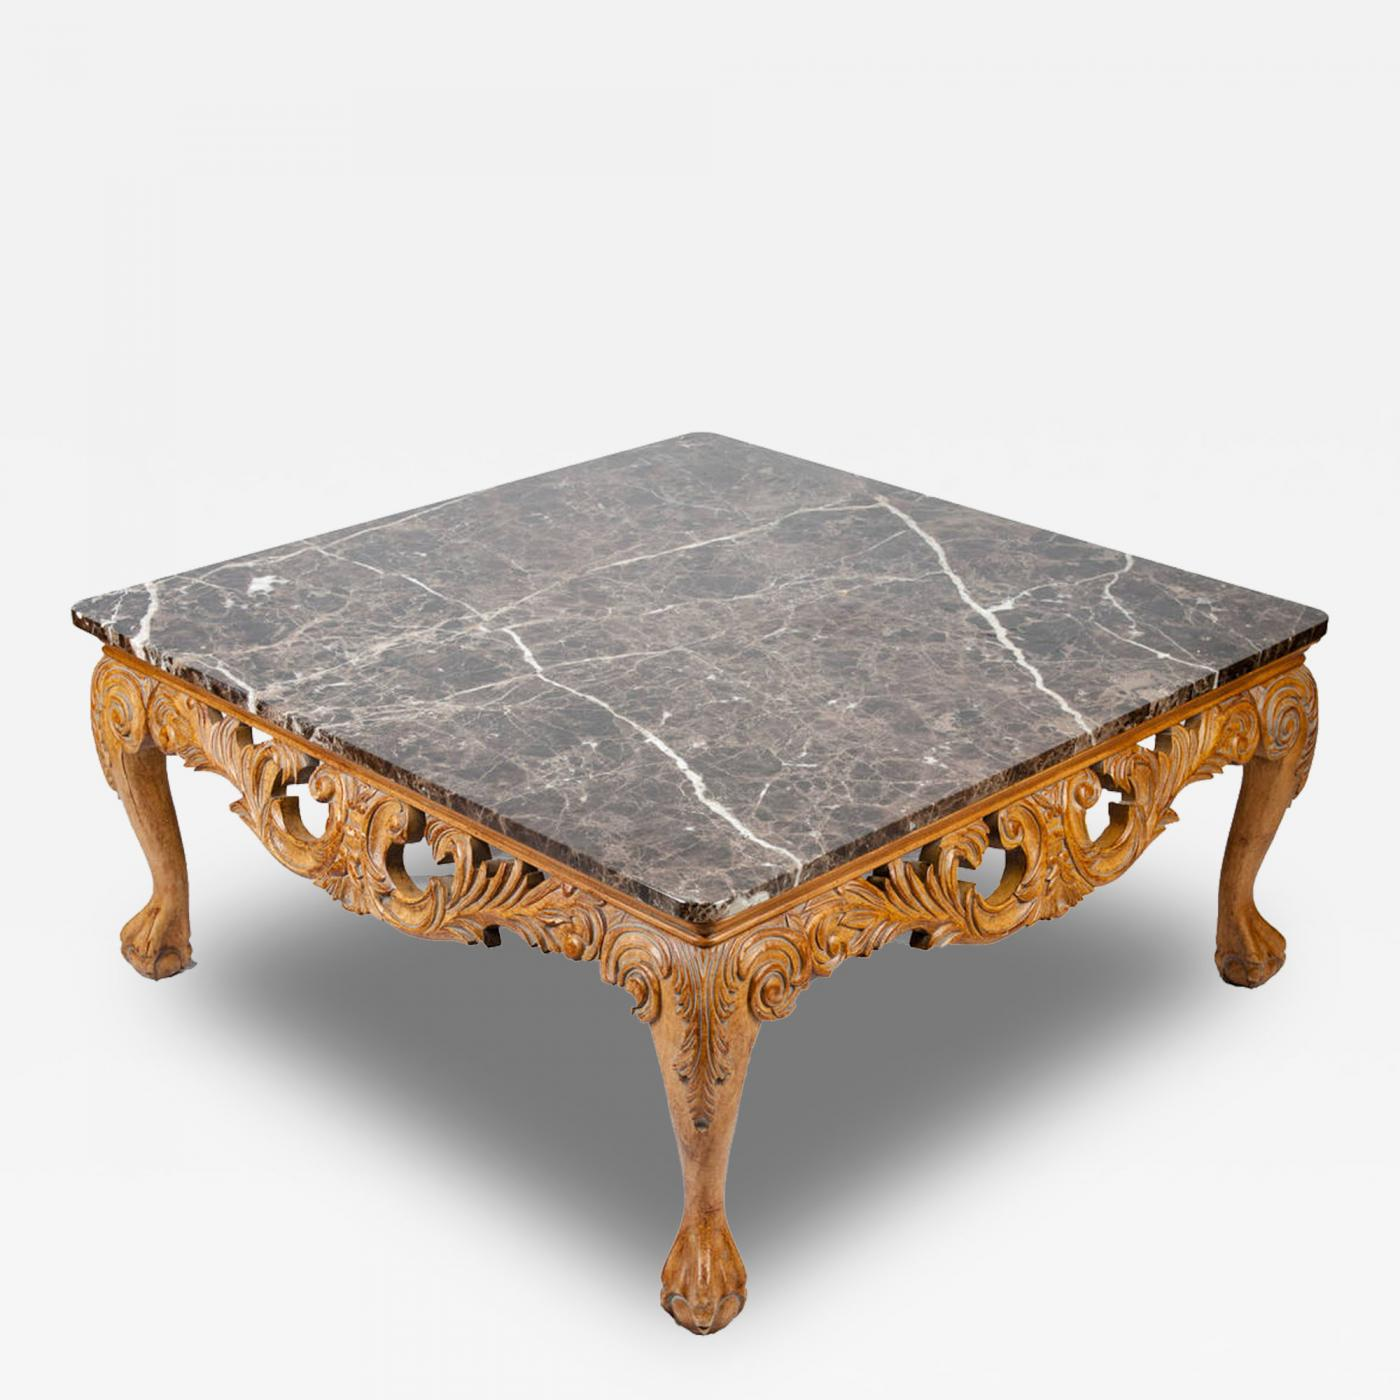 Vintage european marble top coffee table Coffee tables with marble tops